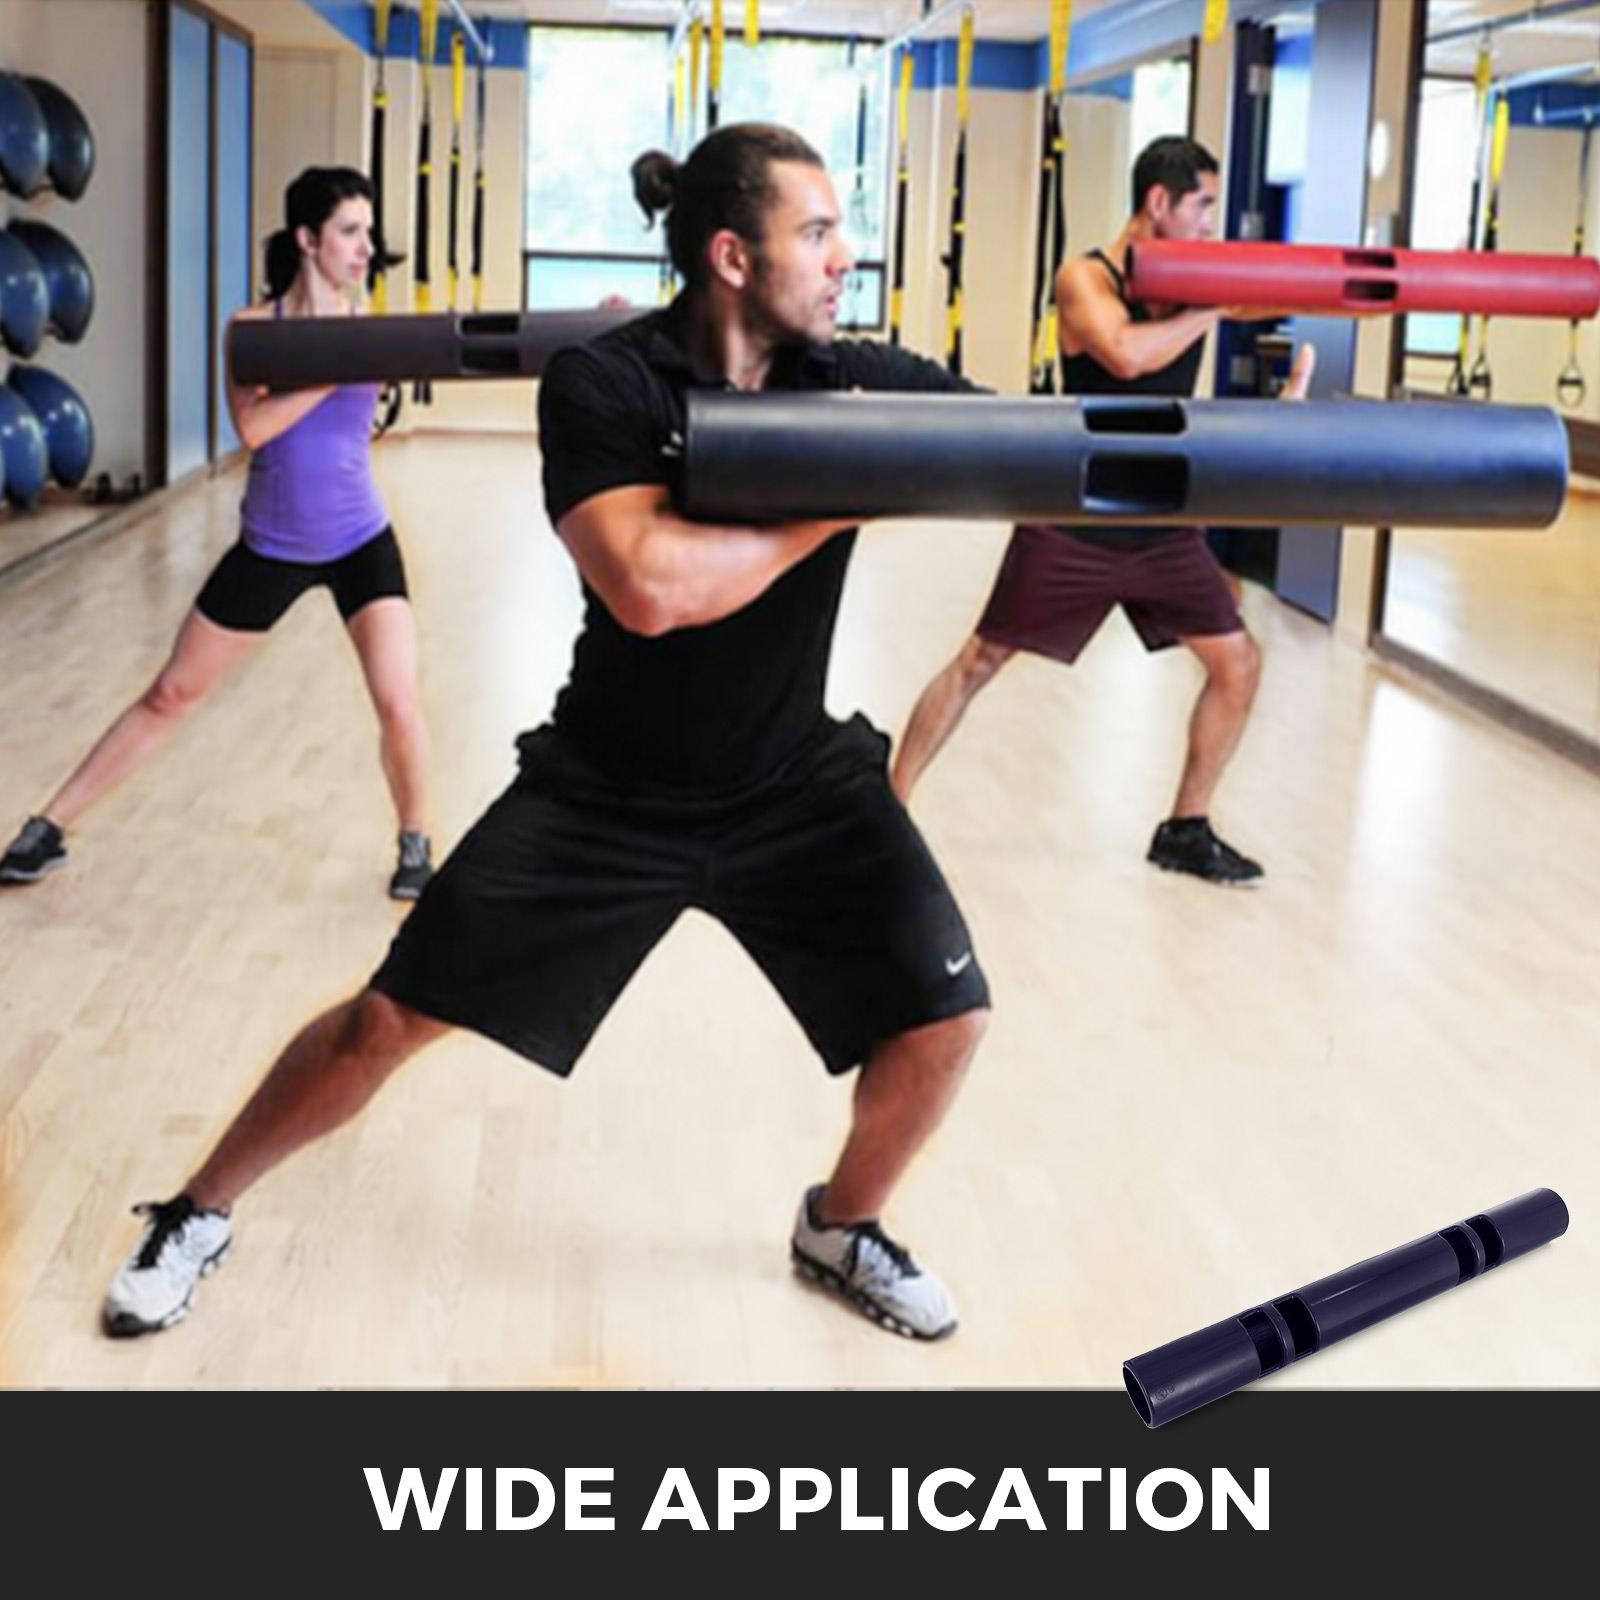 Vipr-Fitpro-Fitness-Tube-Loaded-Movement-Training-weightlifting-4-6-8-10-12-Kg thumbnail 139